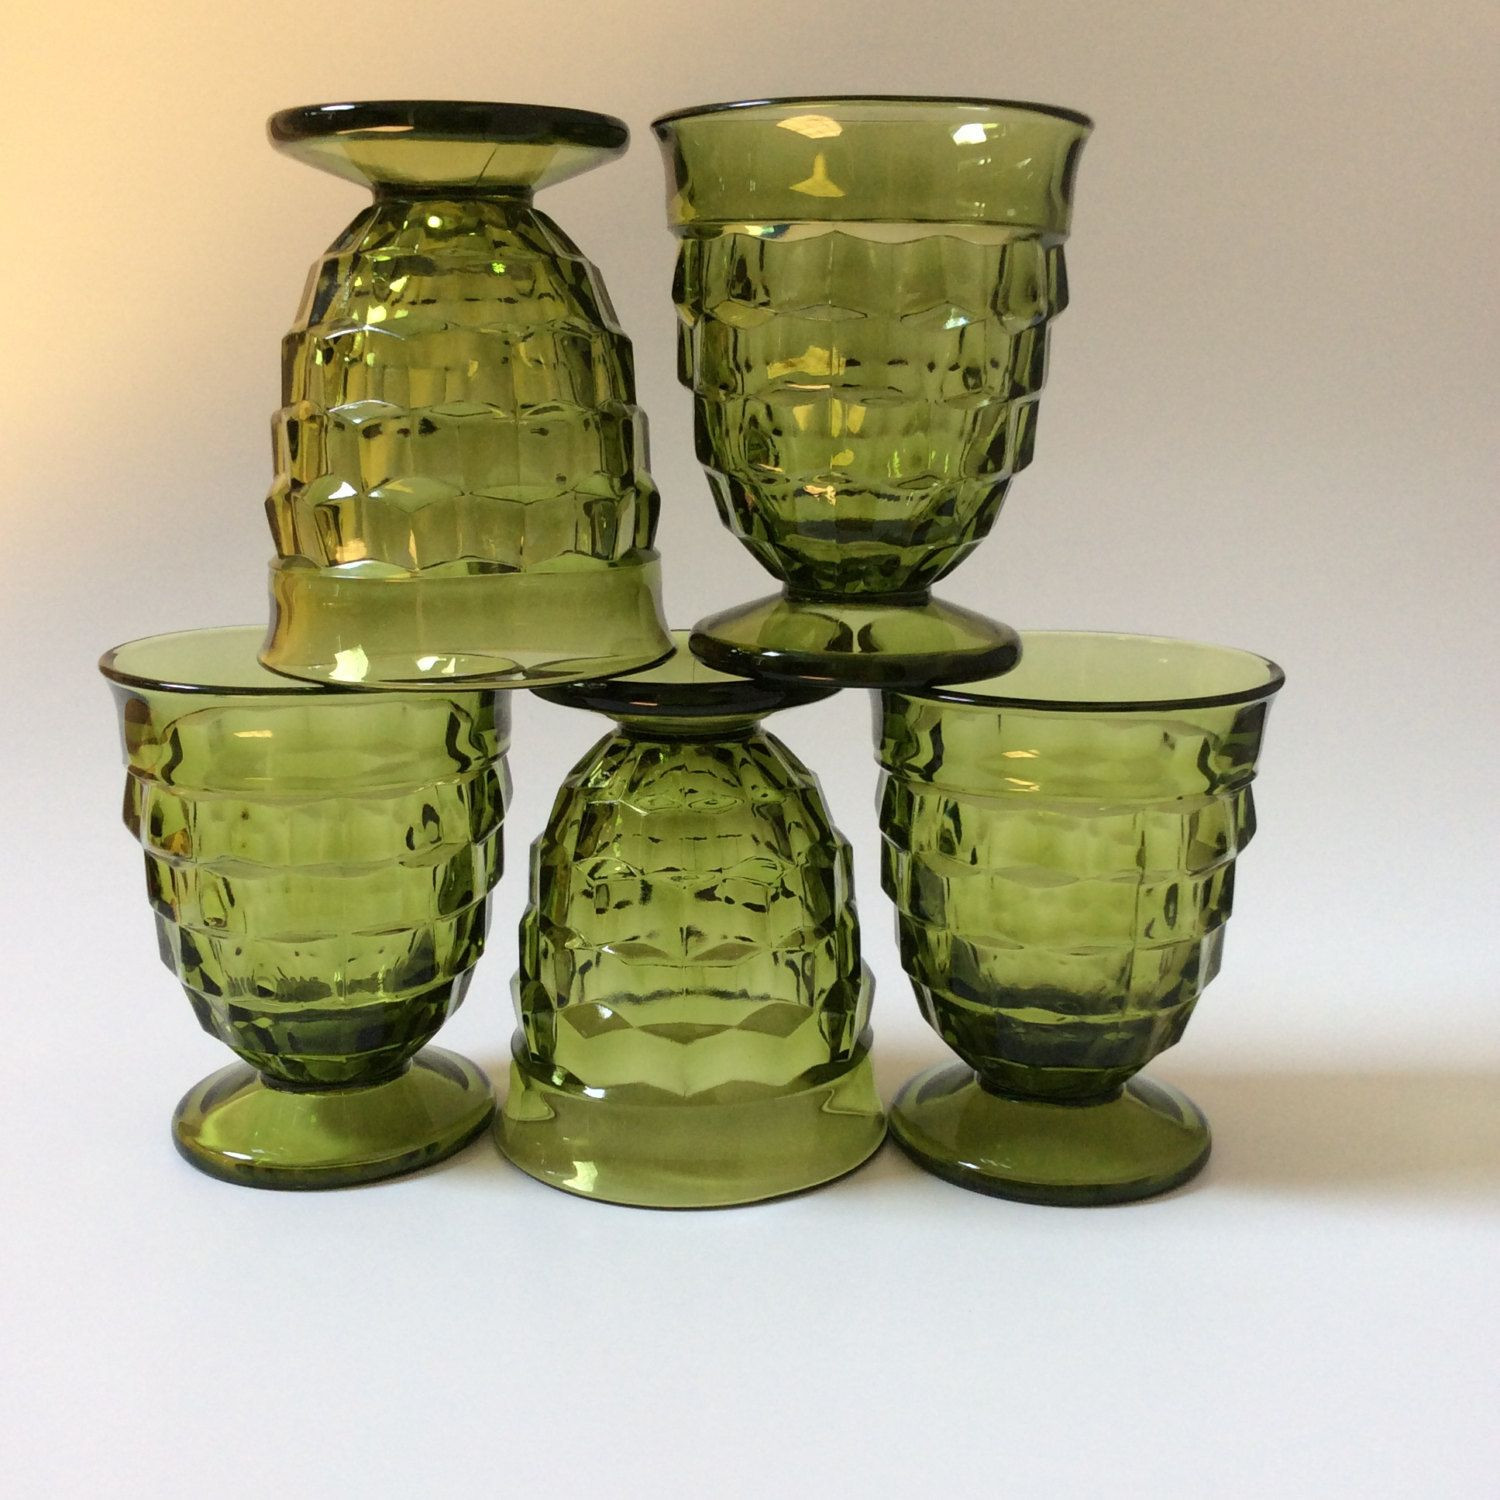 eo brody green vase of vintage olive green indiana glass whitehall tumblers set of five by with regard to vintage olive green indiana glass whitehall tumblers set of five by eastwestvintage1 on etsy